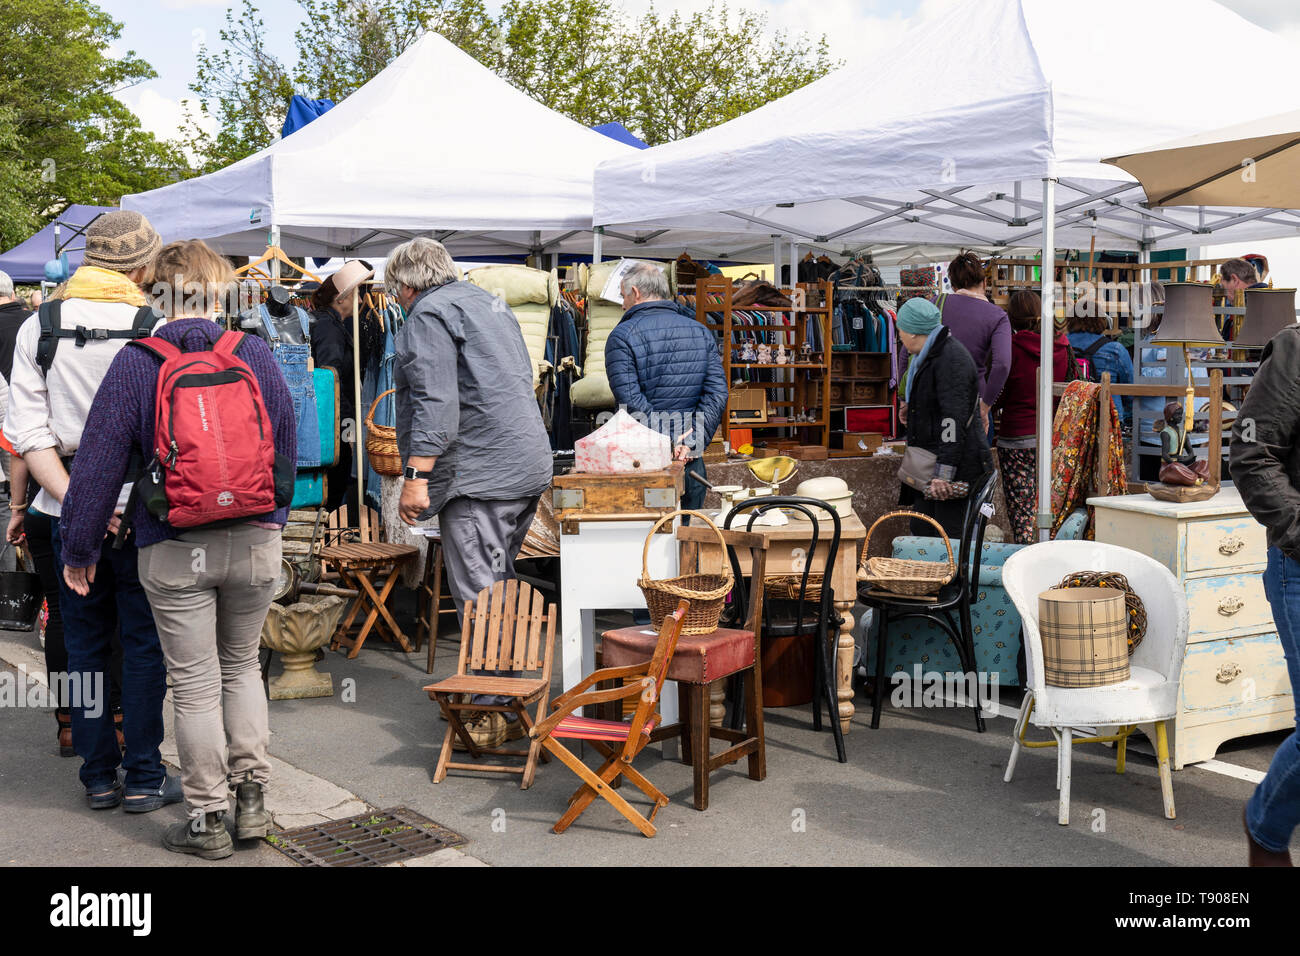 Frome Sunday Market, Frome town centre, Somerset, England - Stock Image